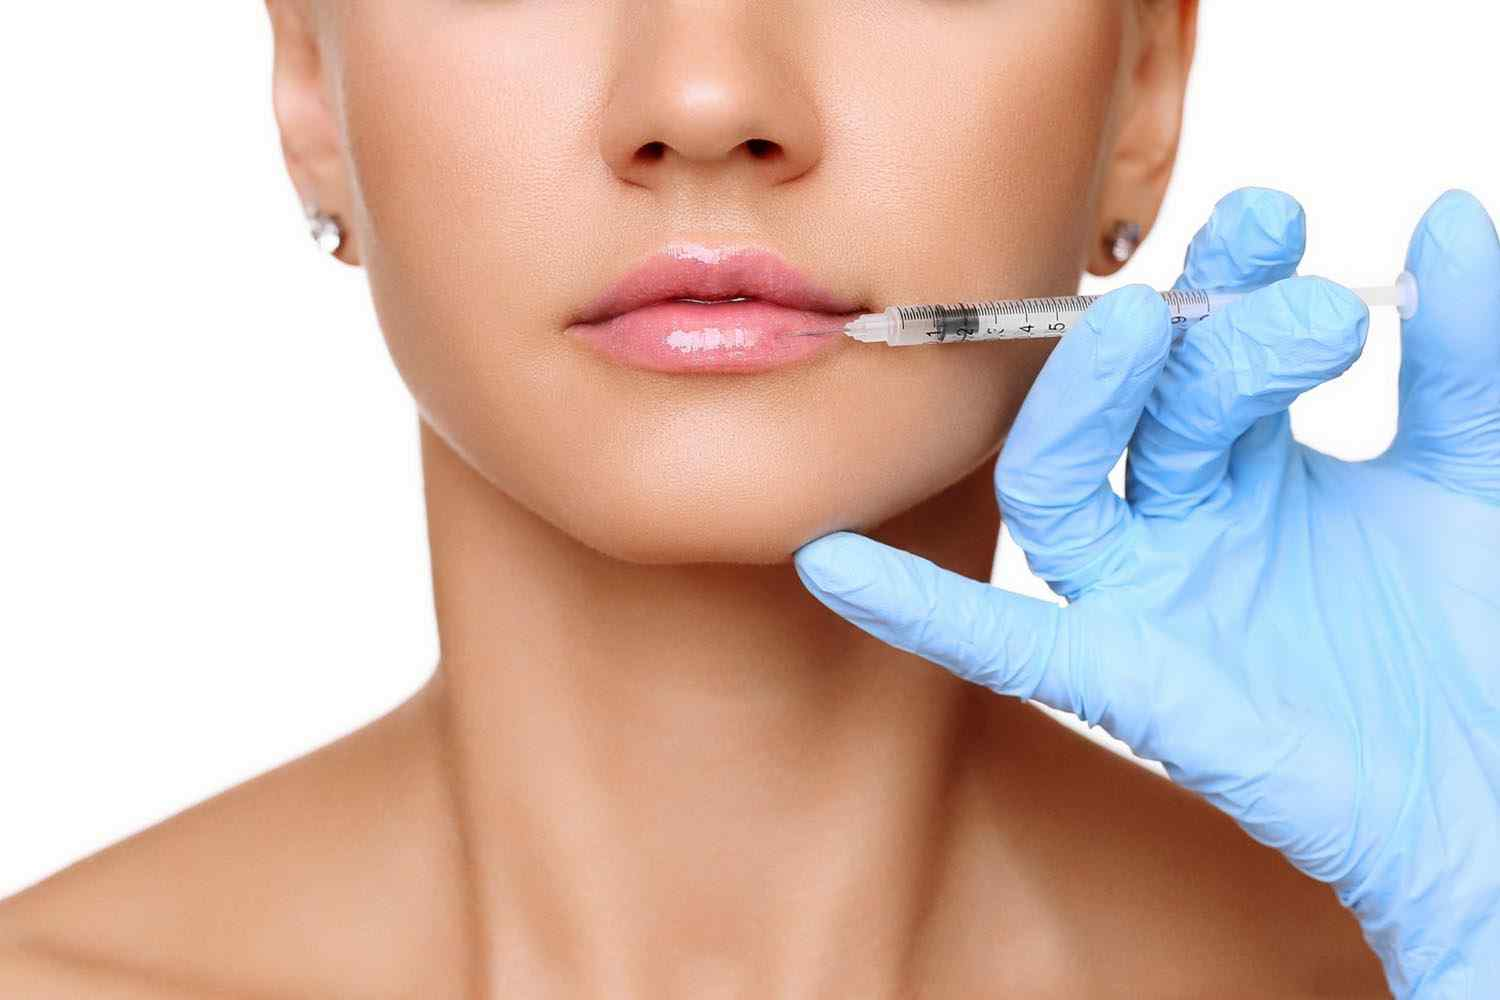 https://drcotrufo.co.uk/wp-content/uploads/2017/08/cosmetic-surgery-blog-15.jpg